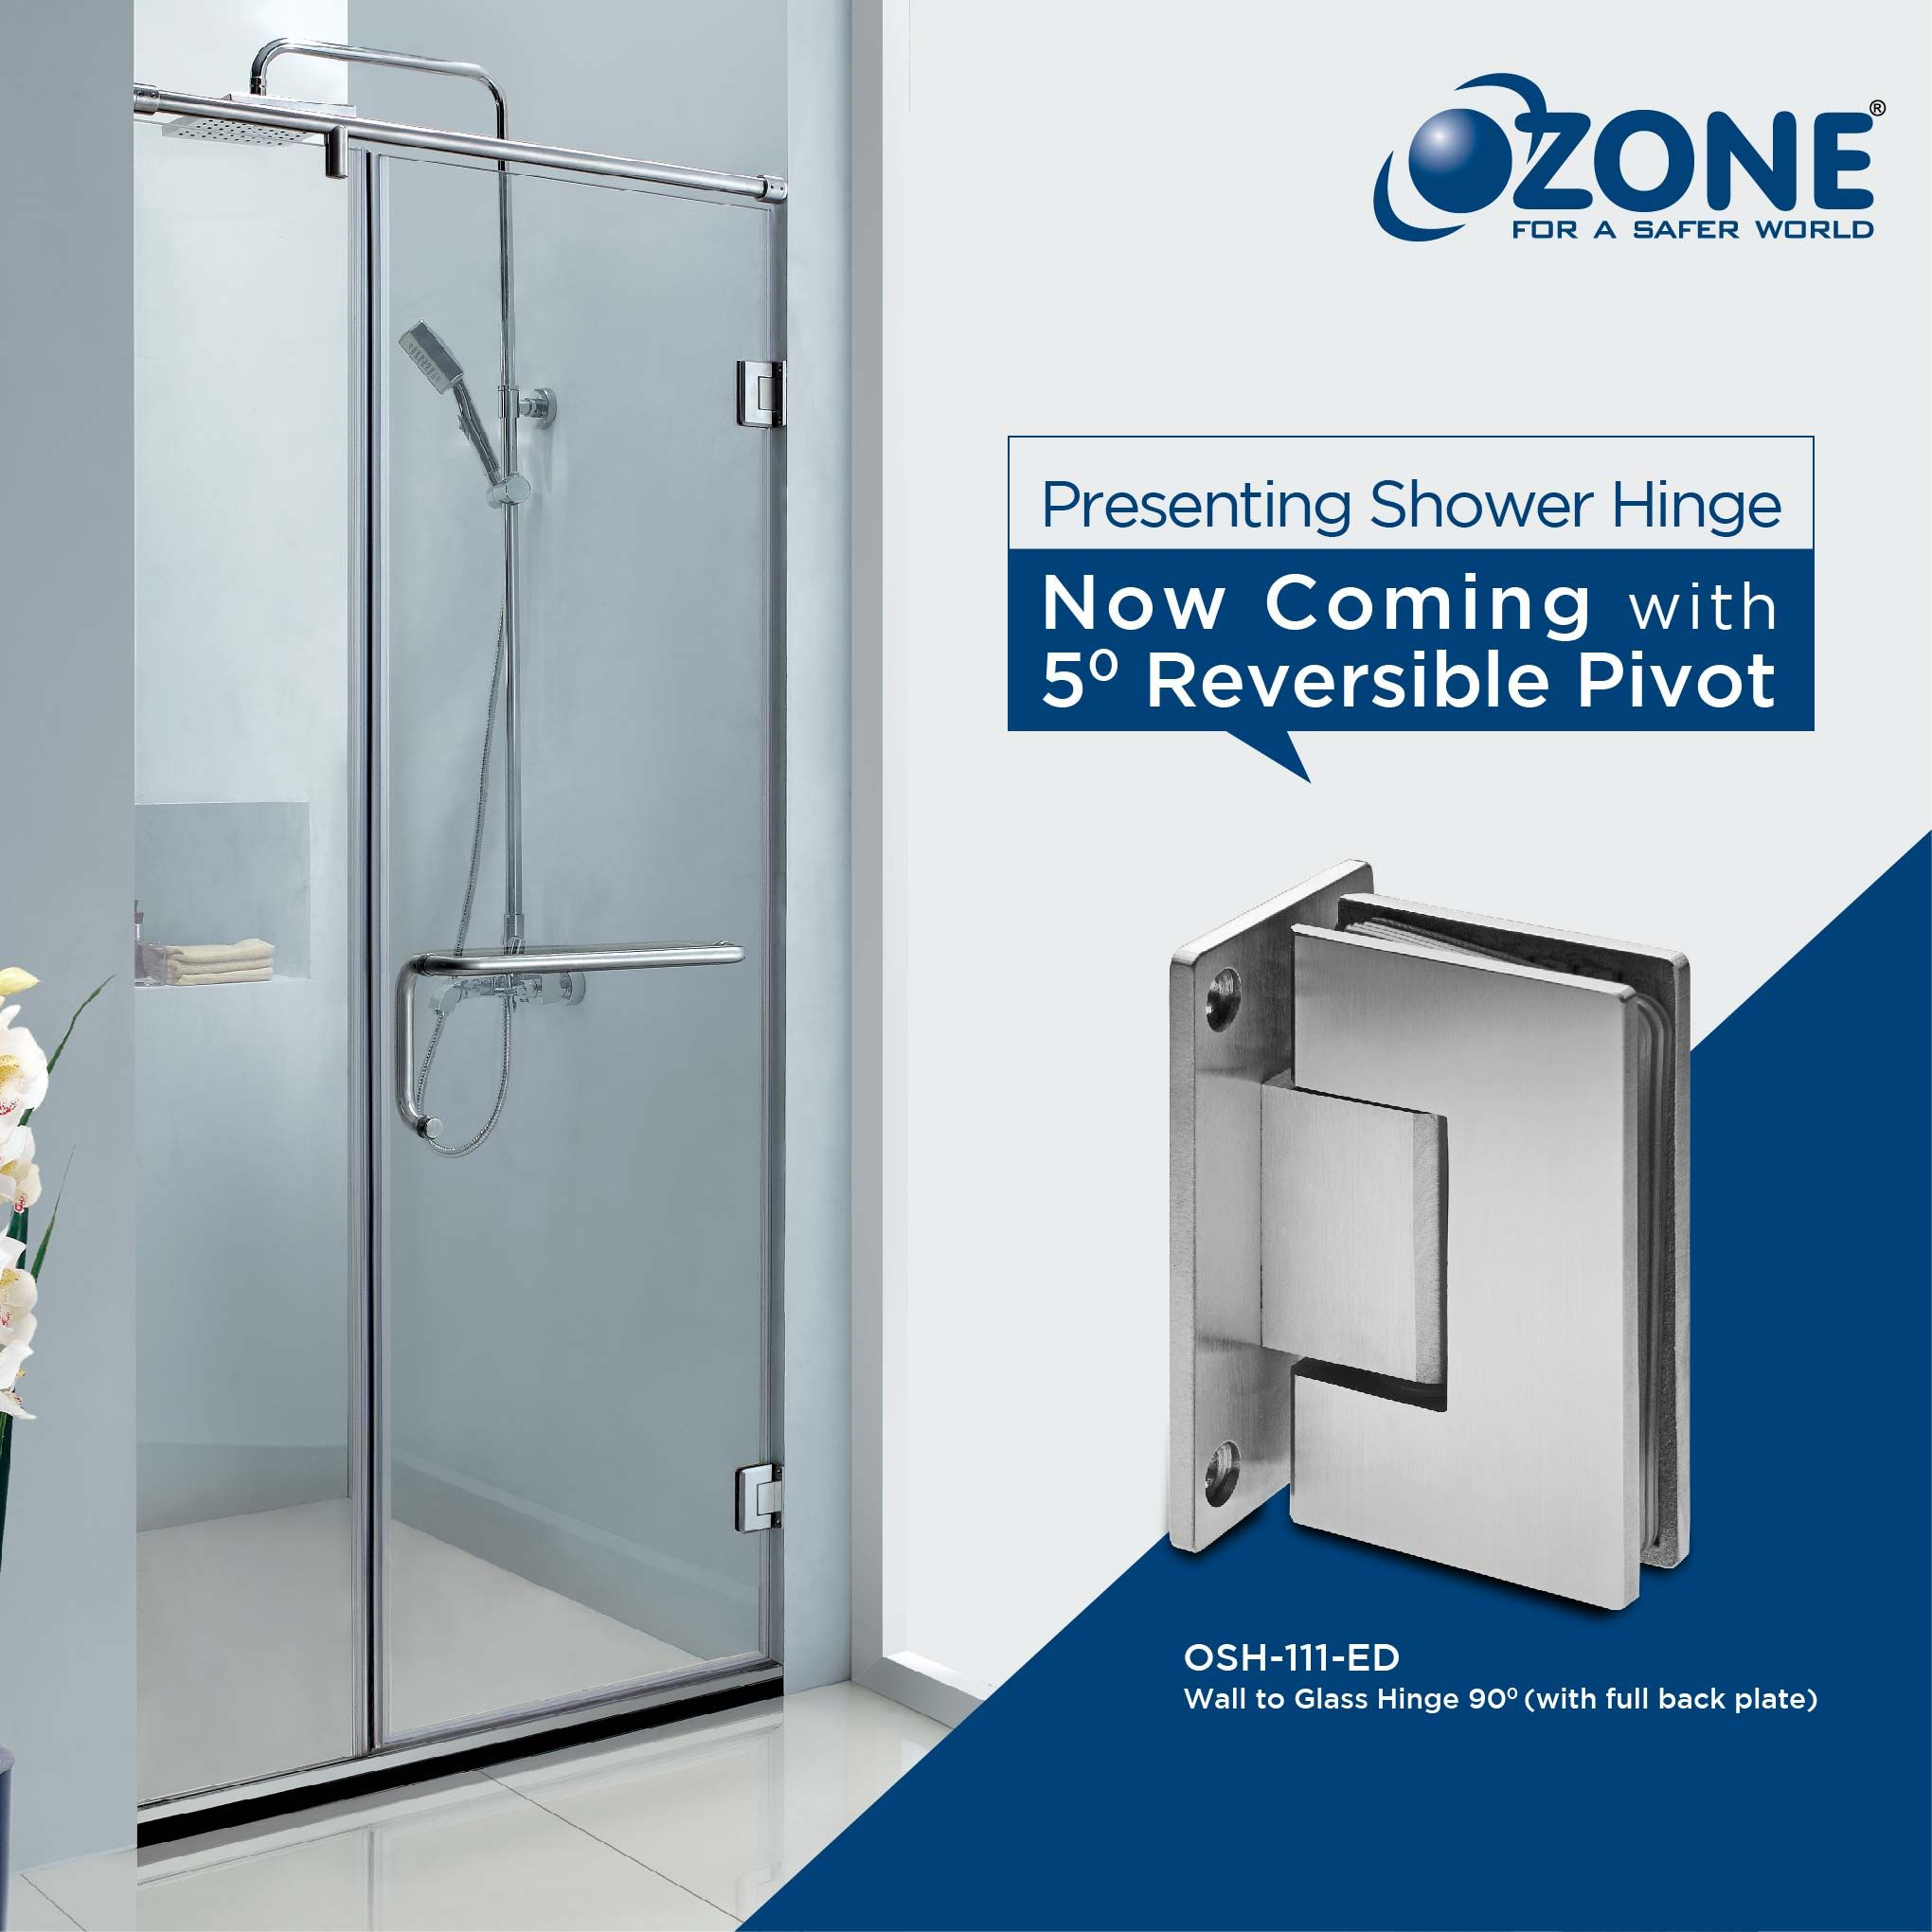 Ozone Is Presenting A Wall To Glass Shower Hinge For Shower